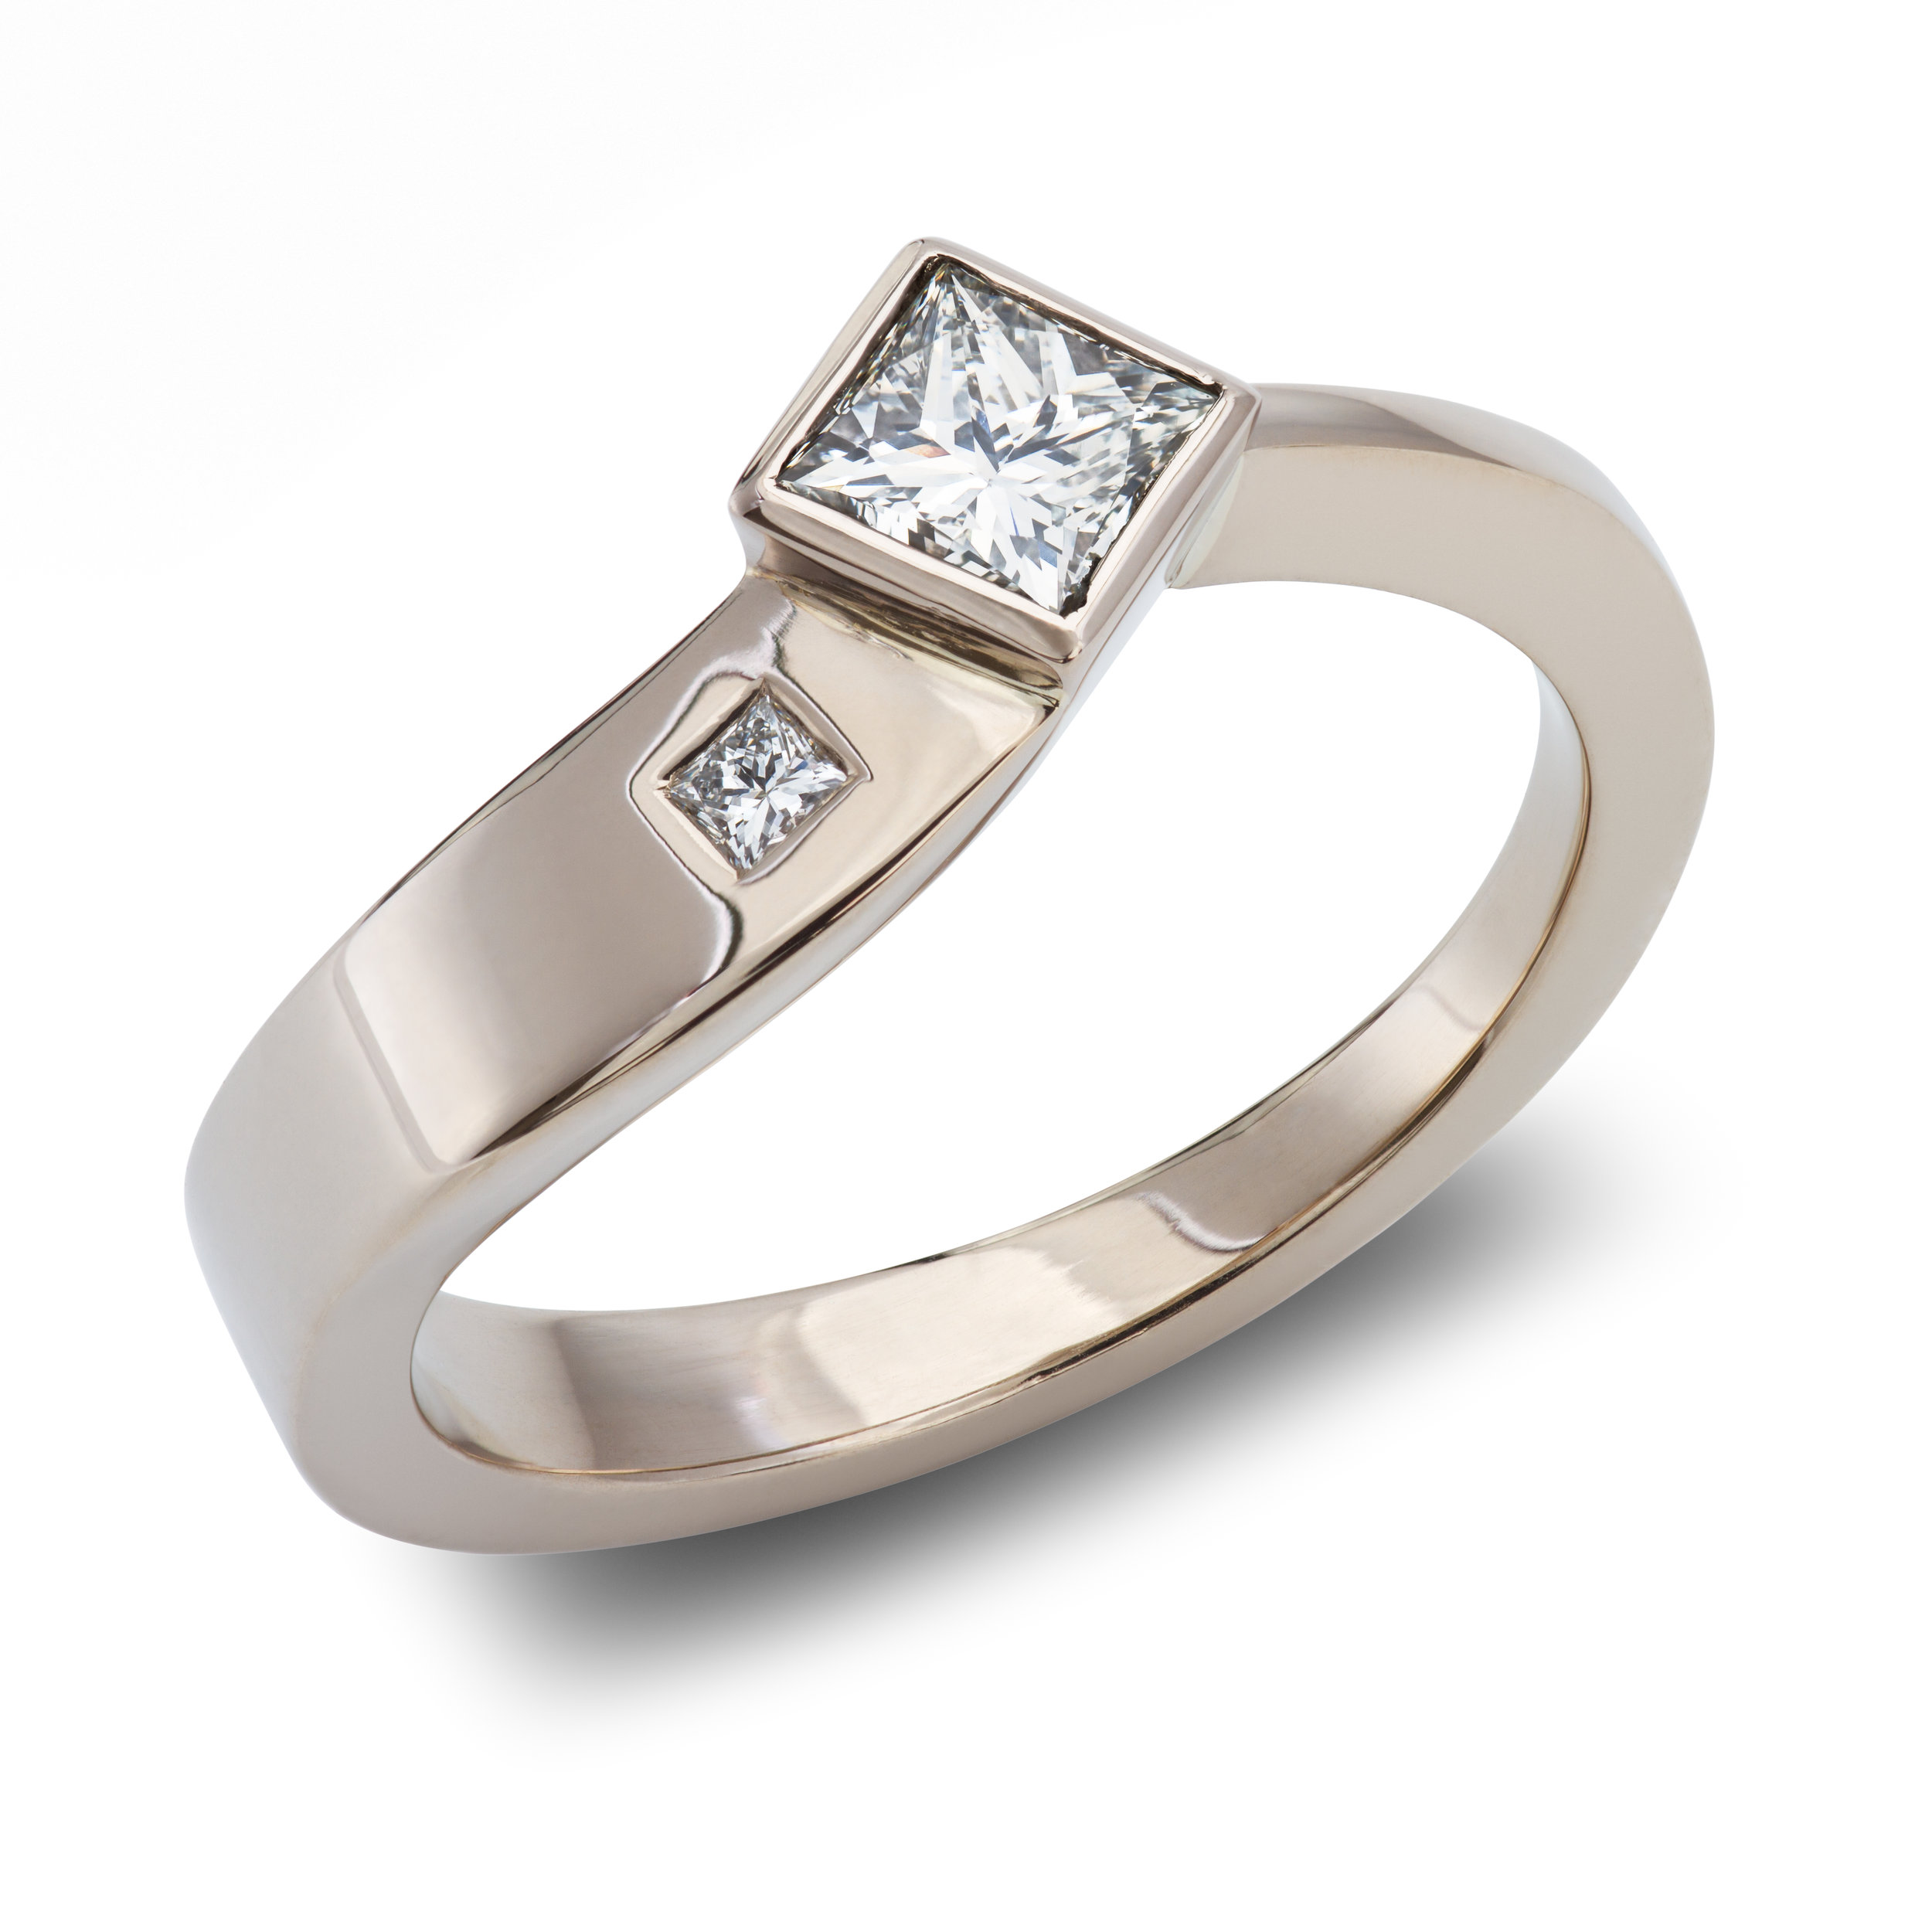 18ct white gold engagement ring set with two princess cut diamonds - £2,680